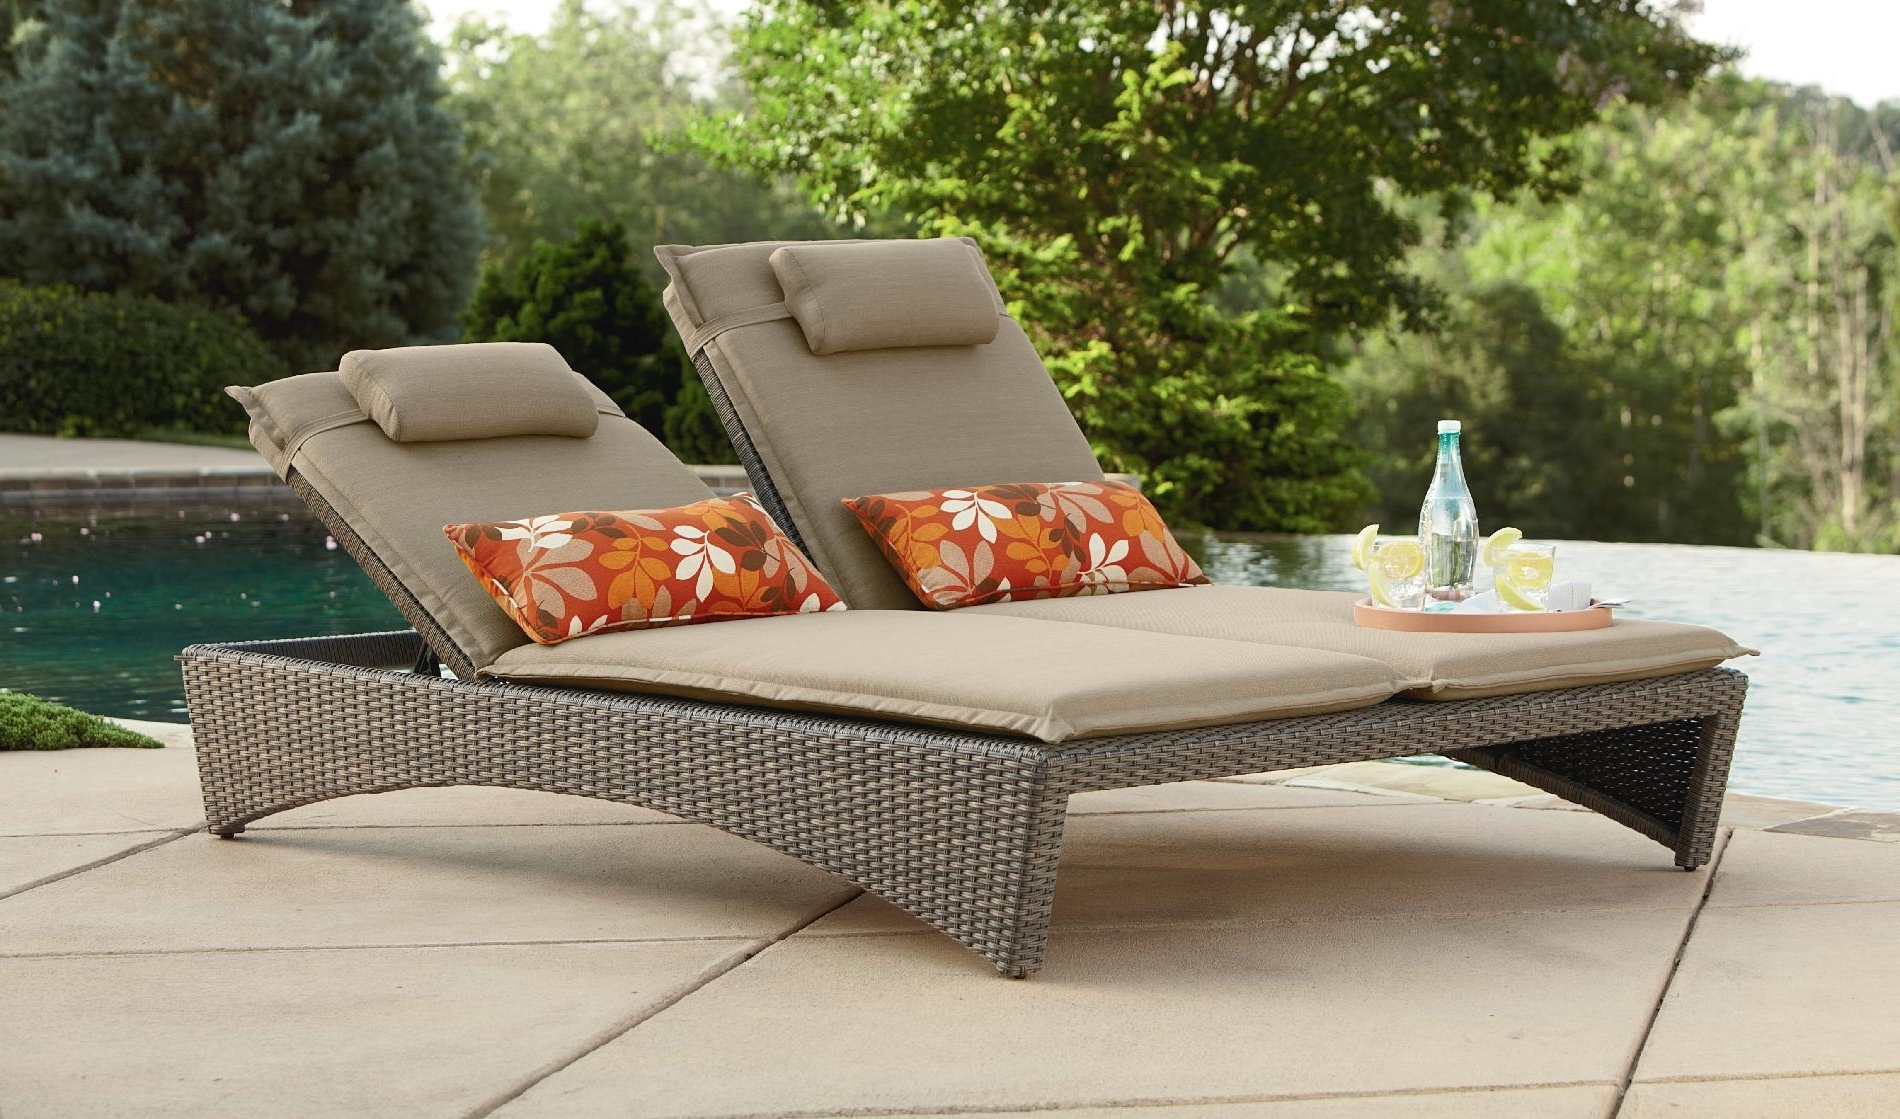 Chaise Lounge Chairs For Outdoor Pertaining To Preferred Lounge Chair : Couch With Chaise Comfy Chaise Lounge Stackable (View 5 of 15)